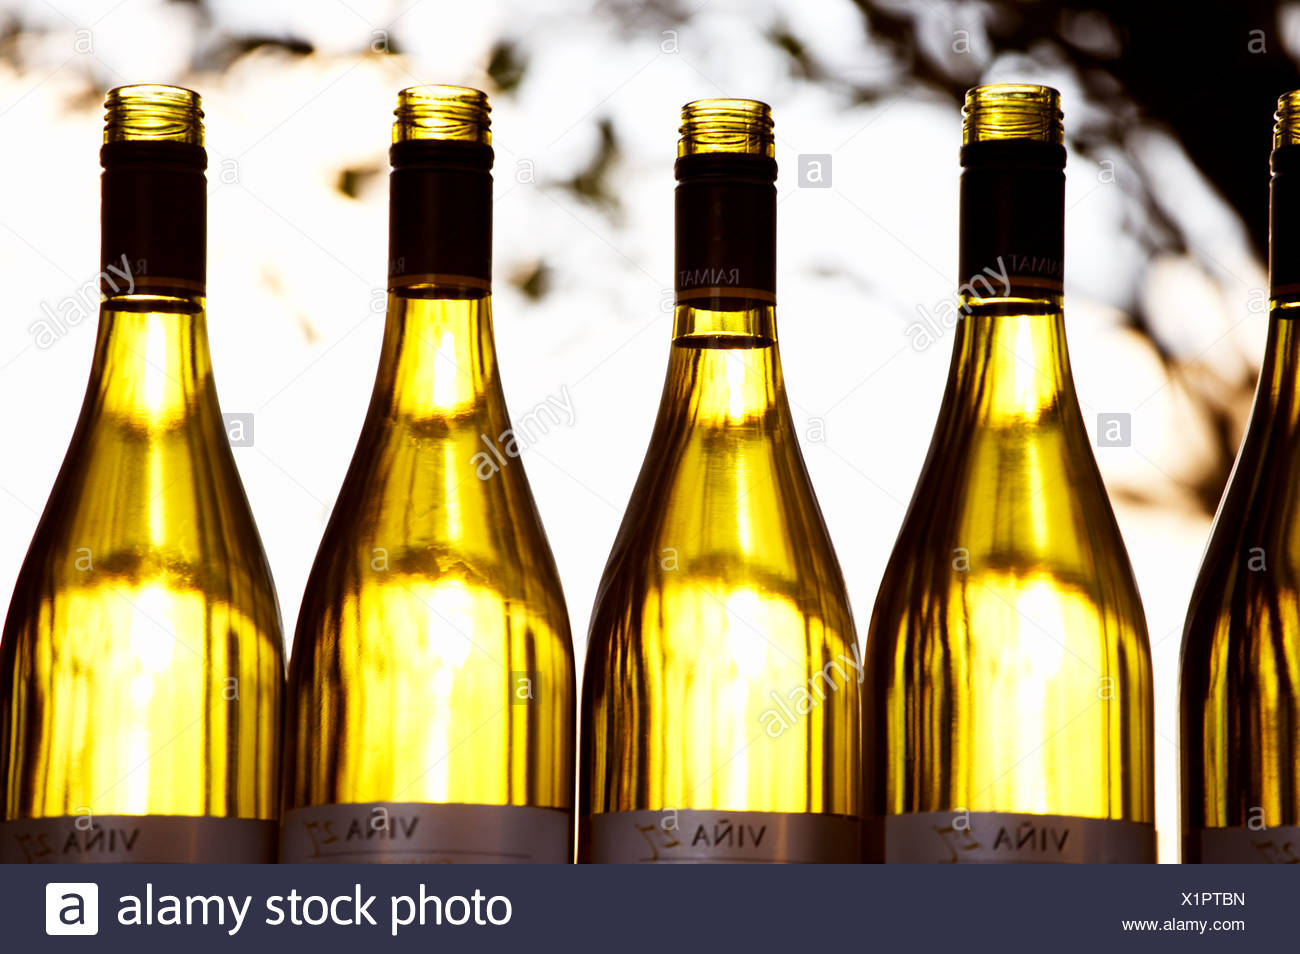 Bottles in a row - Stock Image